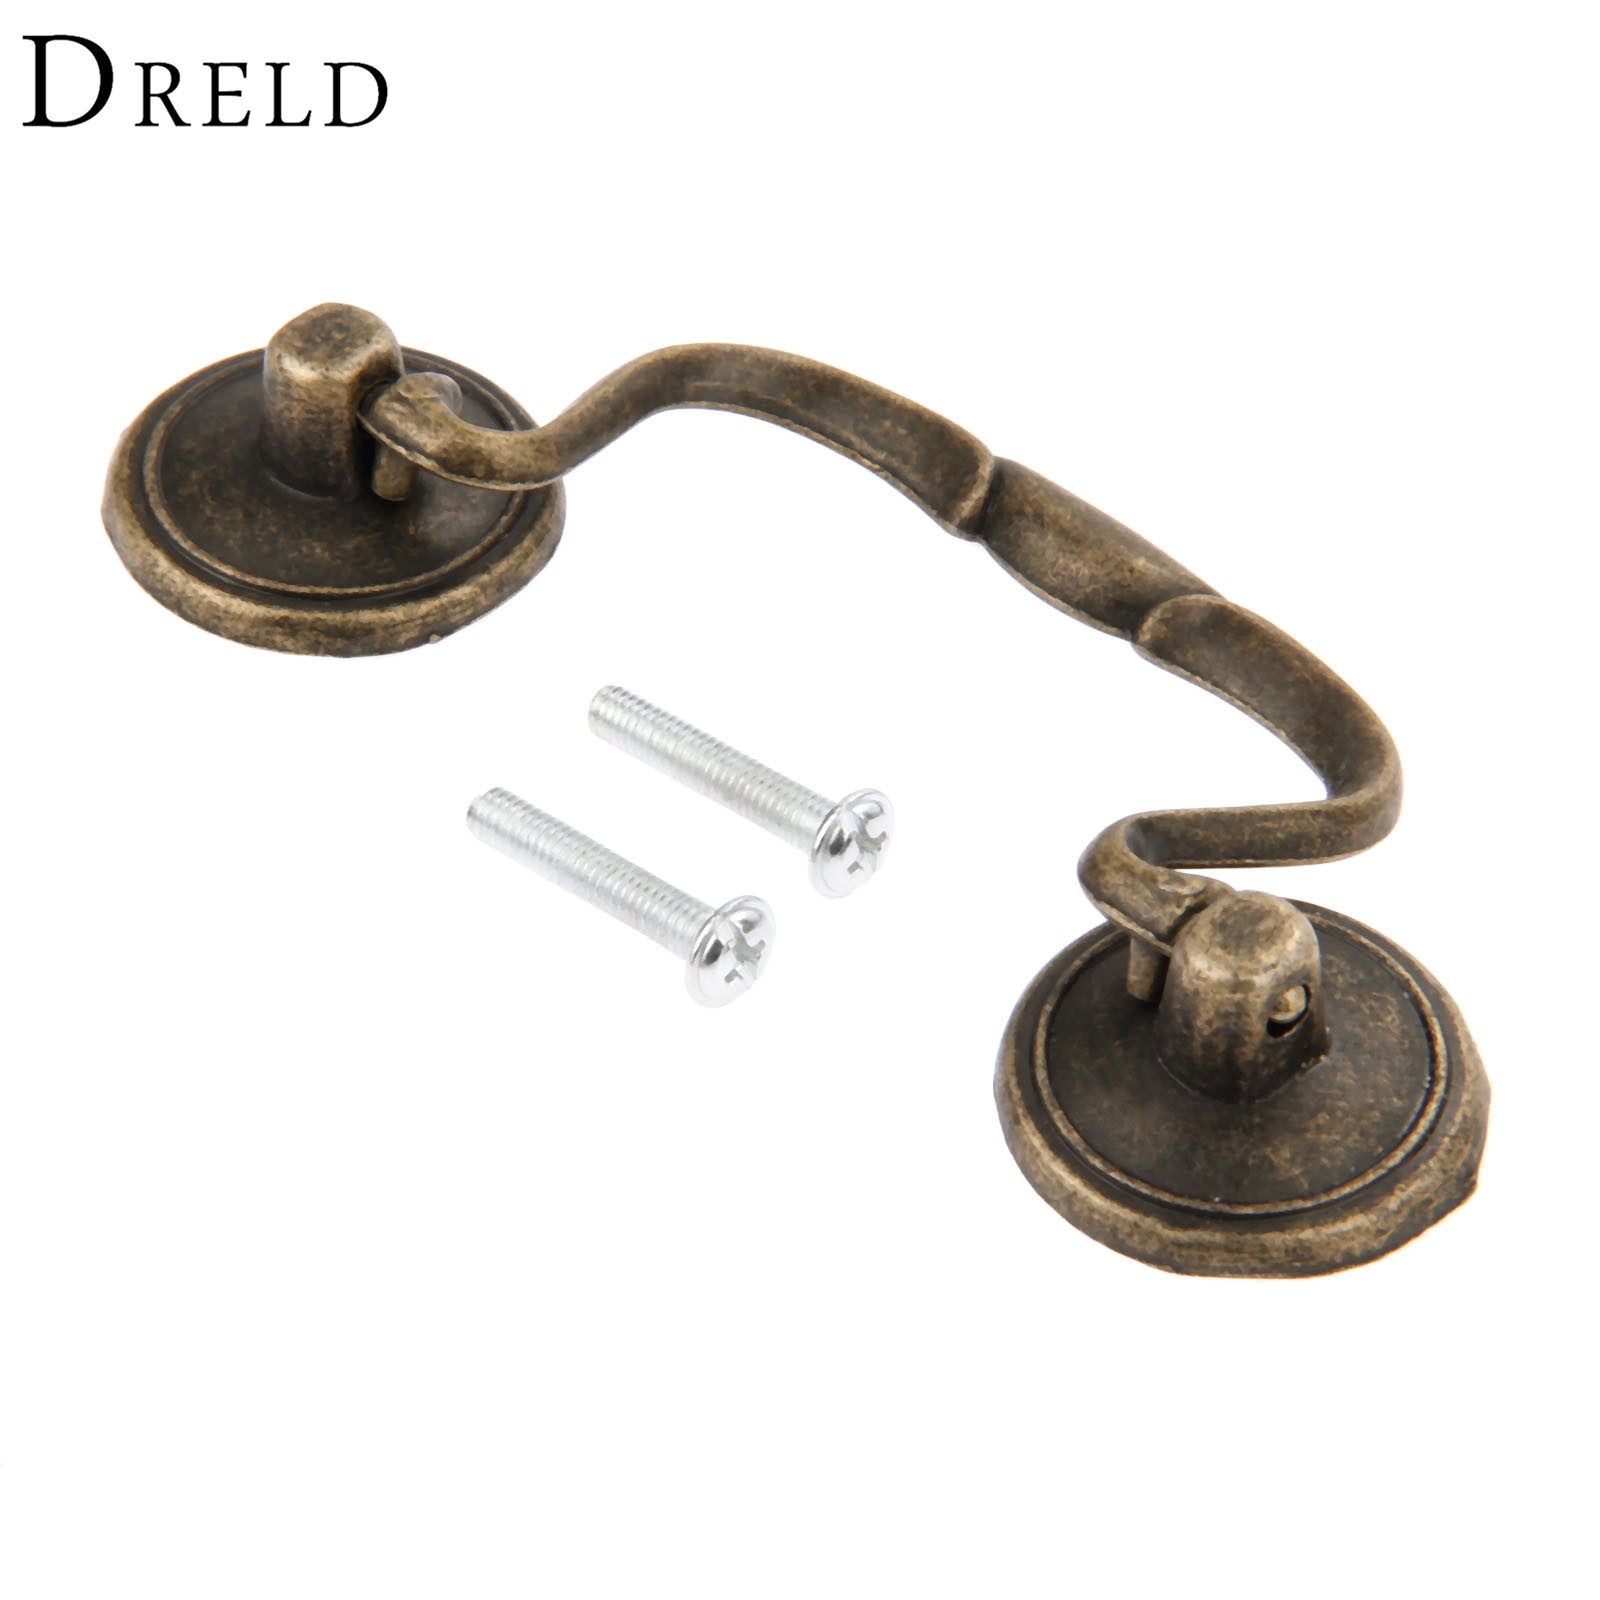 DRELD 82m Antique Furniture Handles Cabinet Knobs and Handles Drawer Door Cupboard Pull Handle Kitchen Knob Furniture Fittings